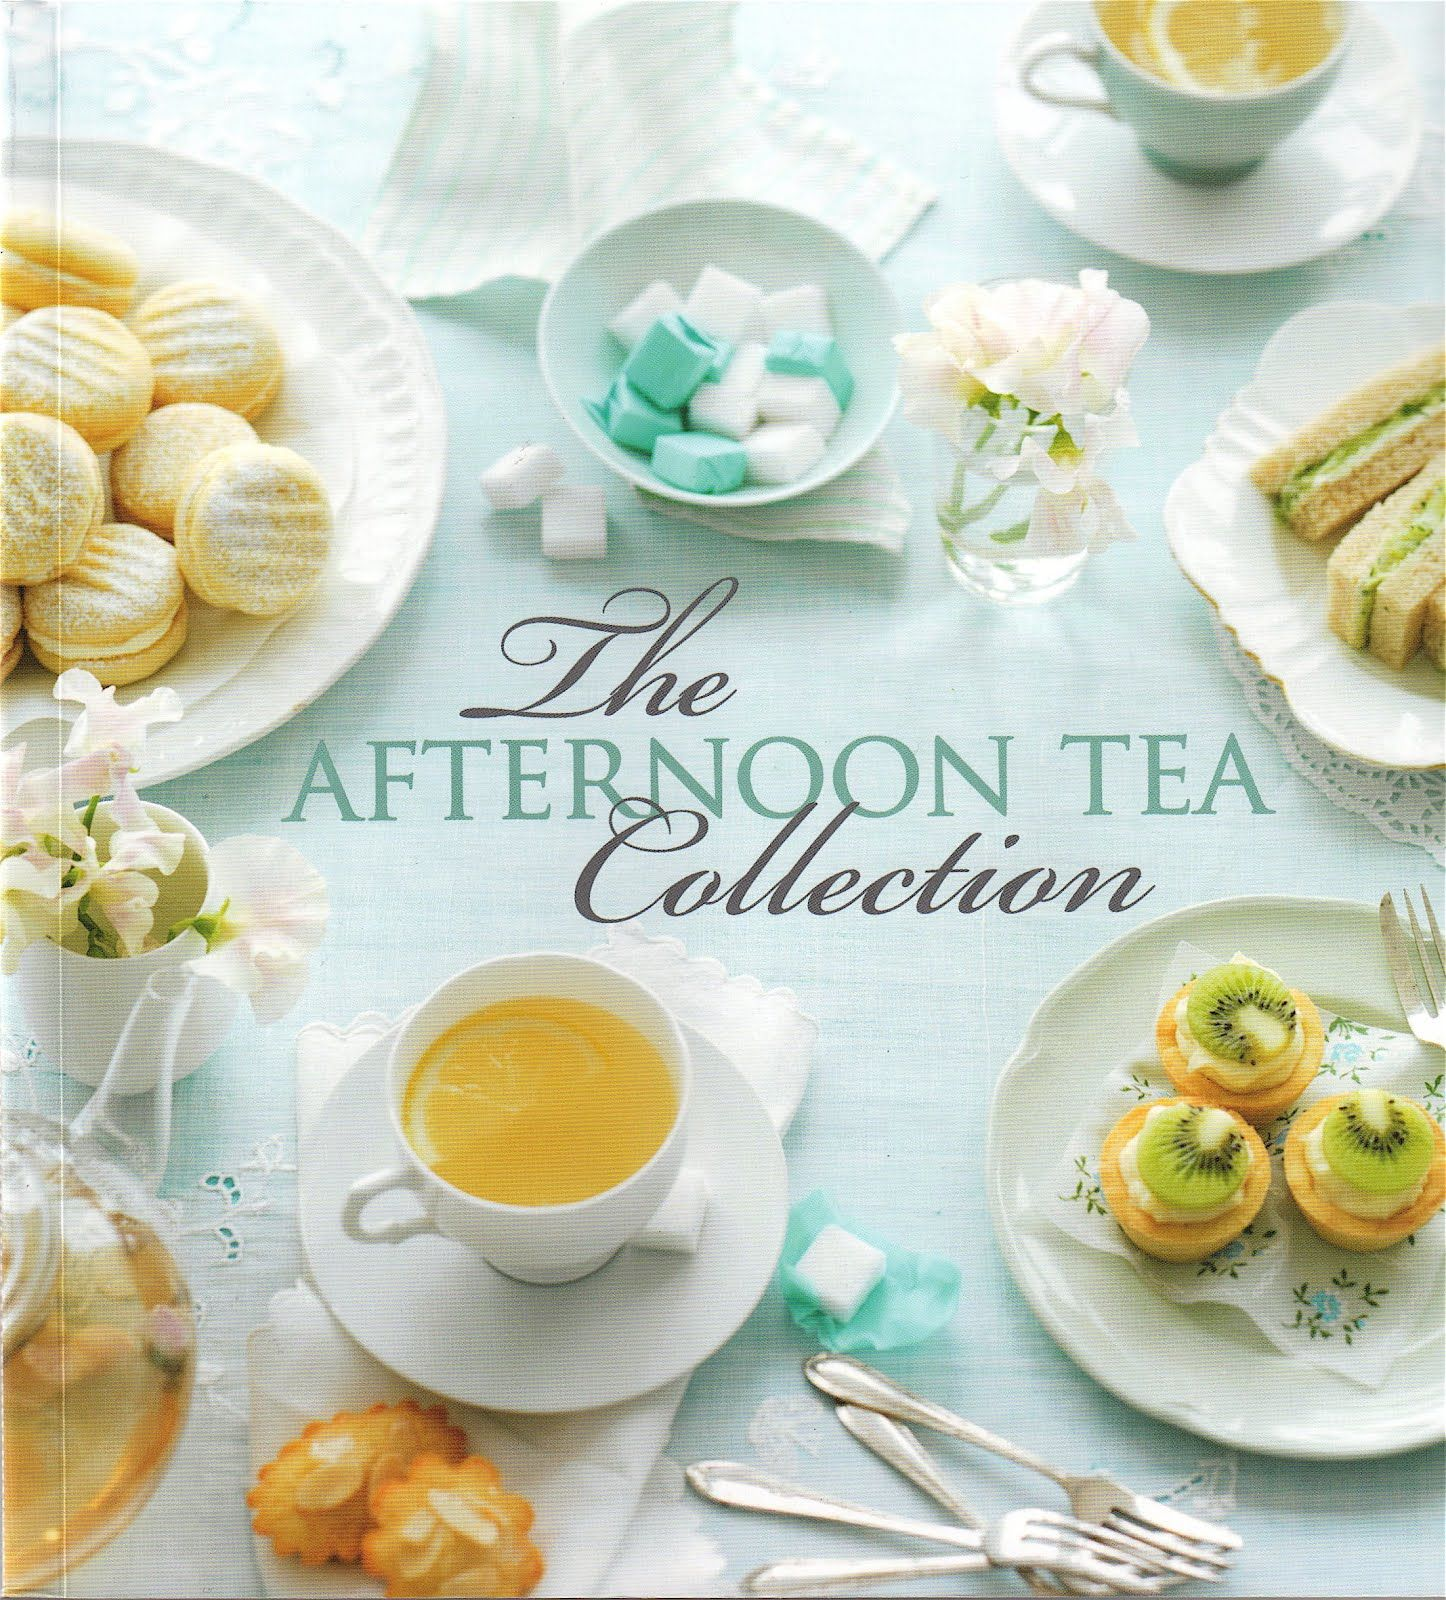 Tea With Friends The Afternoon Tea Collection Afternoon Tea Tea Collection Tea Recipes